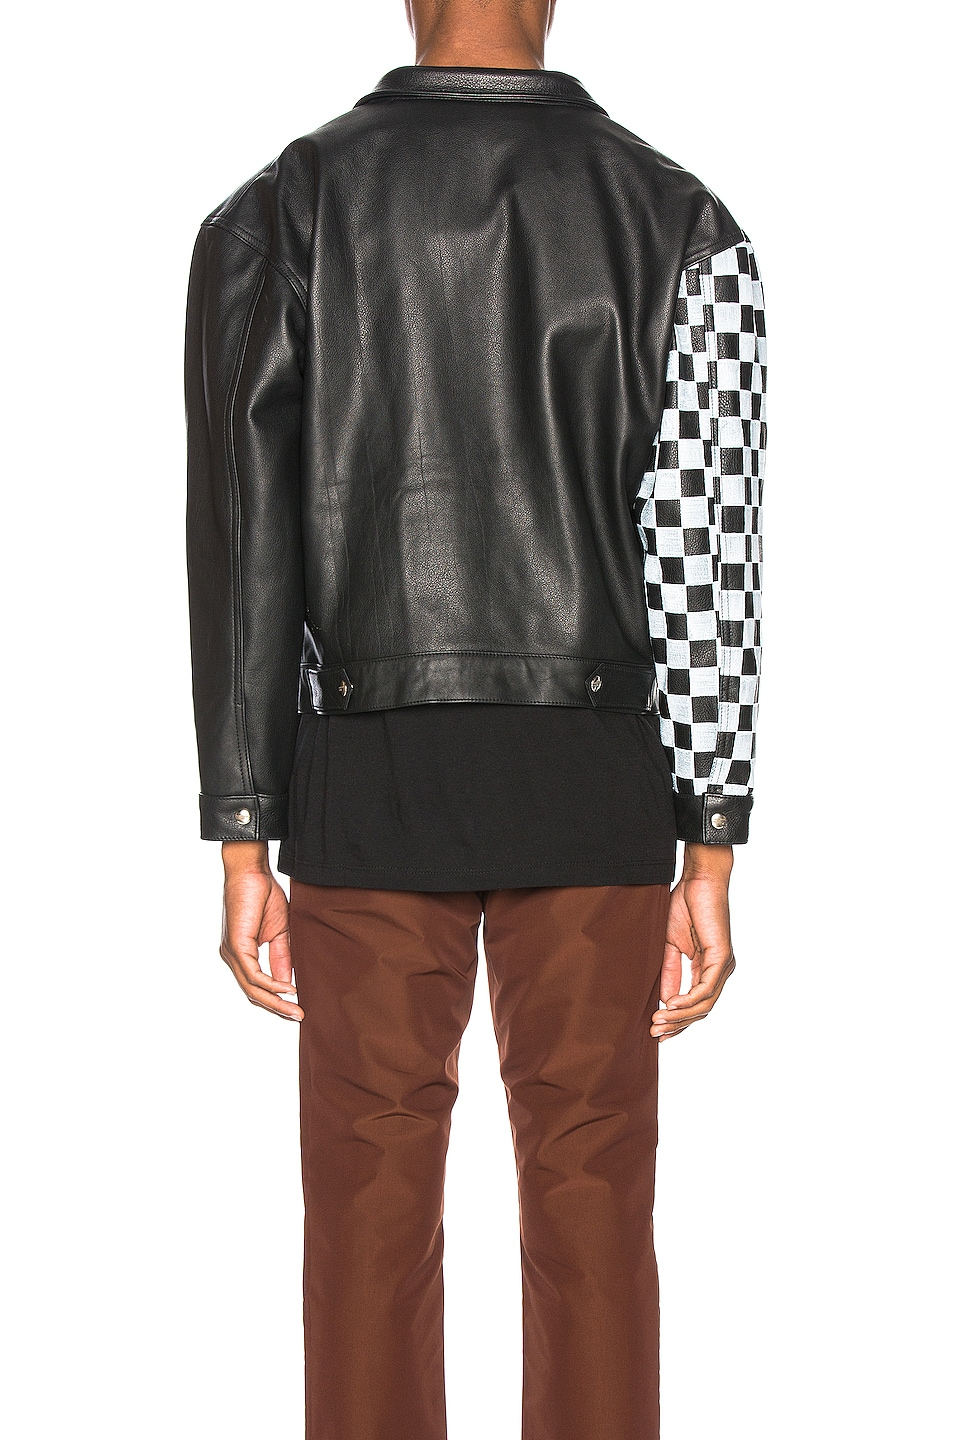 Image 4 of Enfants Riches Deprimes Checkered Sleeve Leather Jacket in Black & White